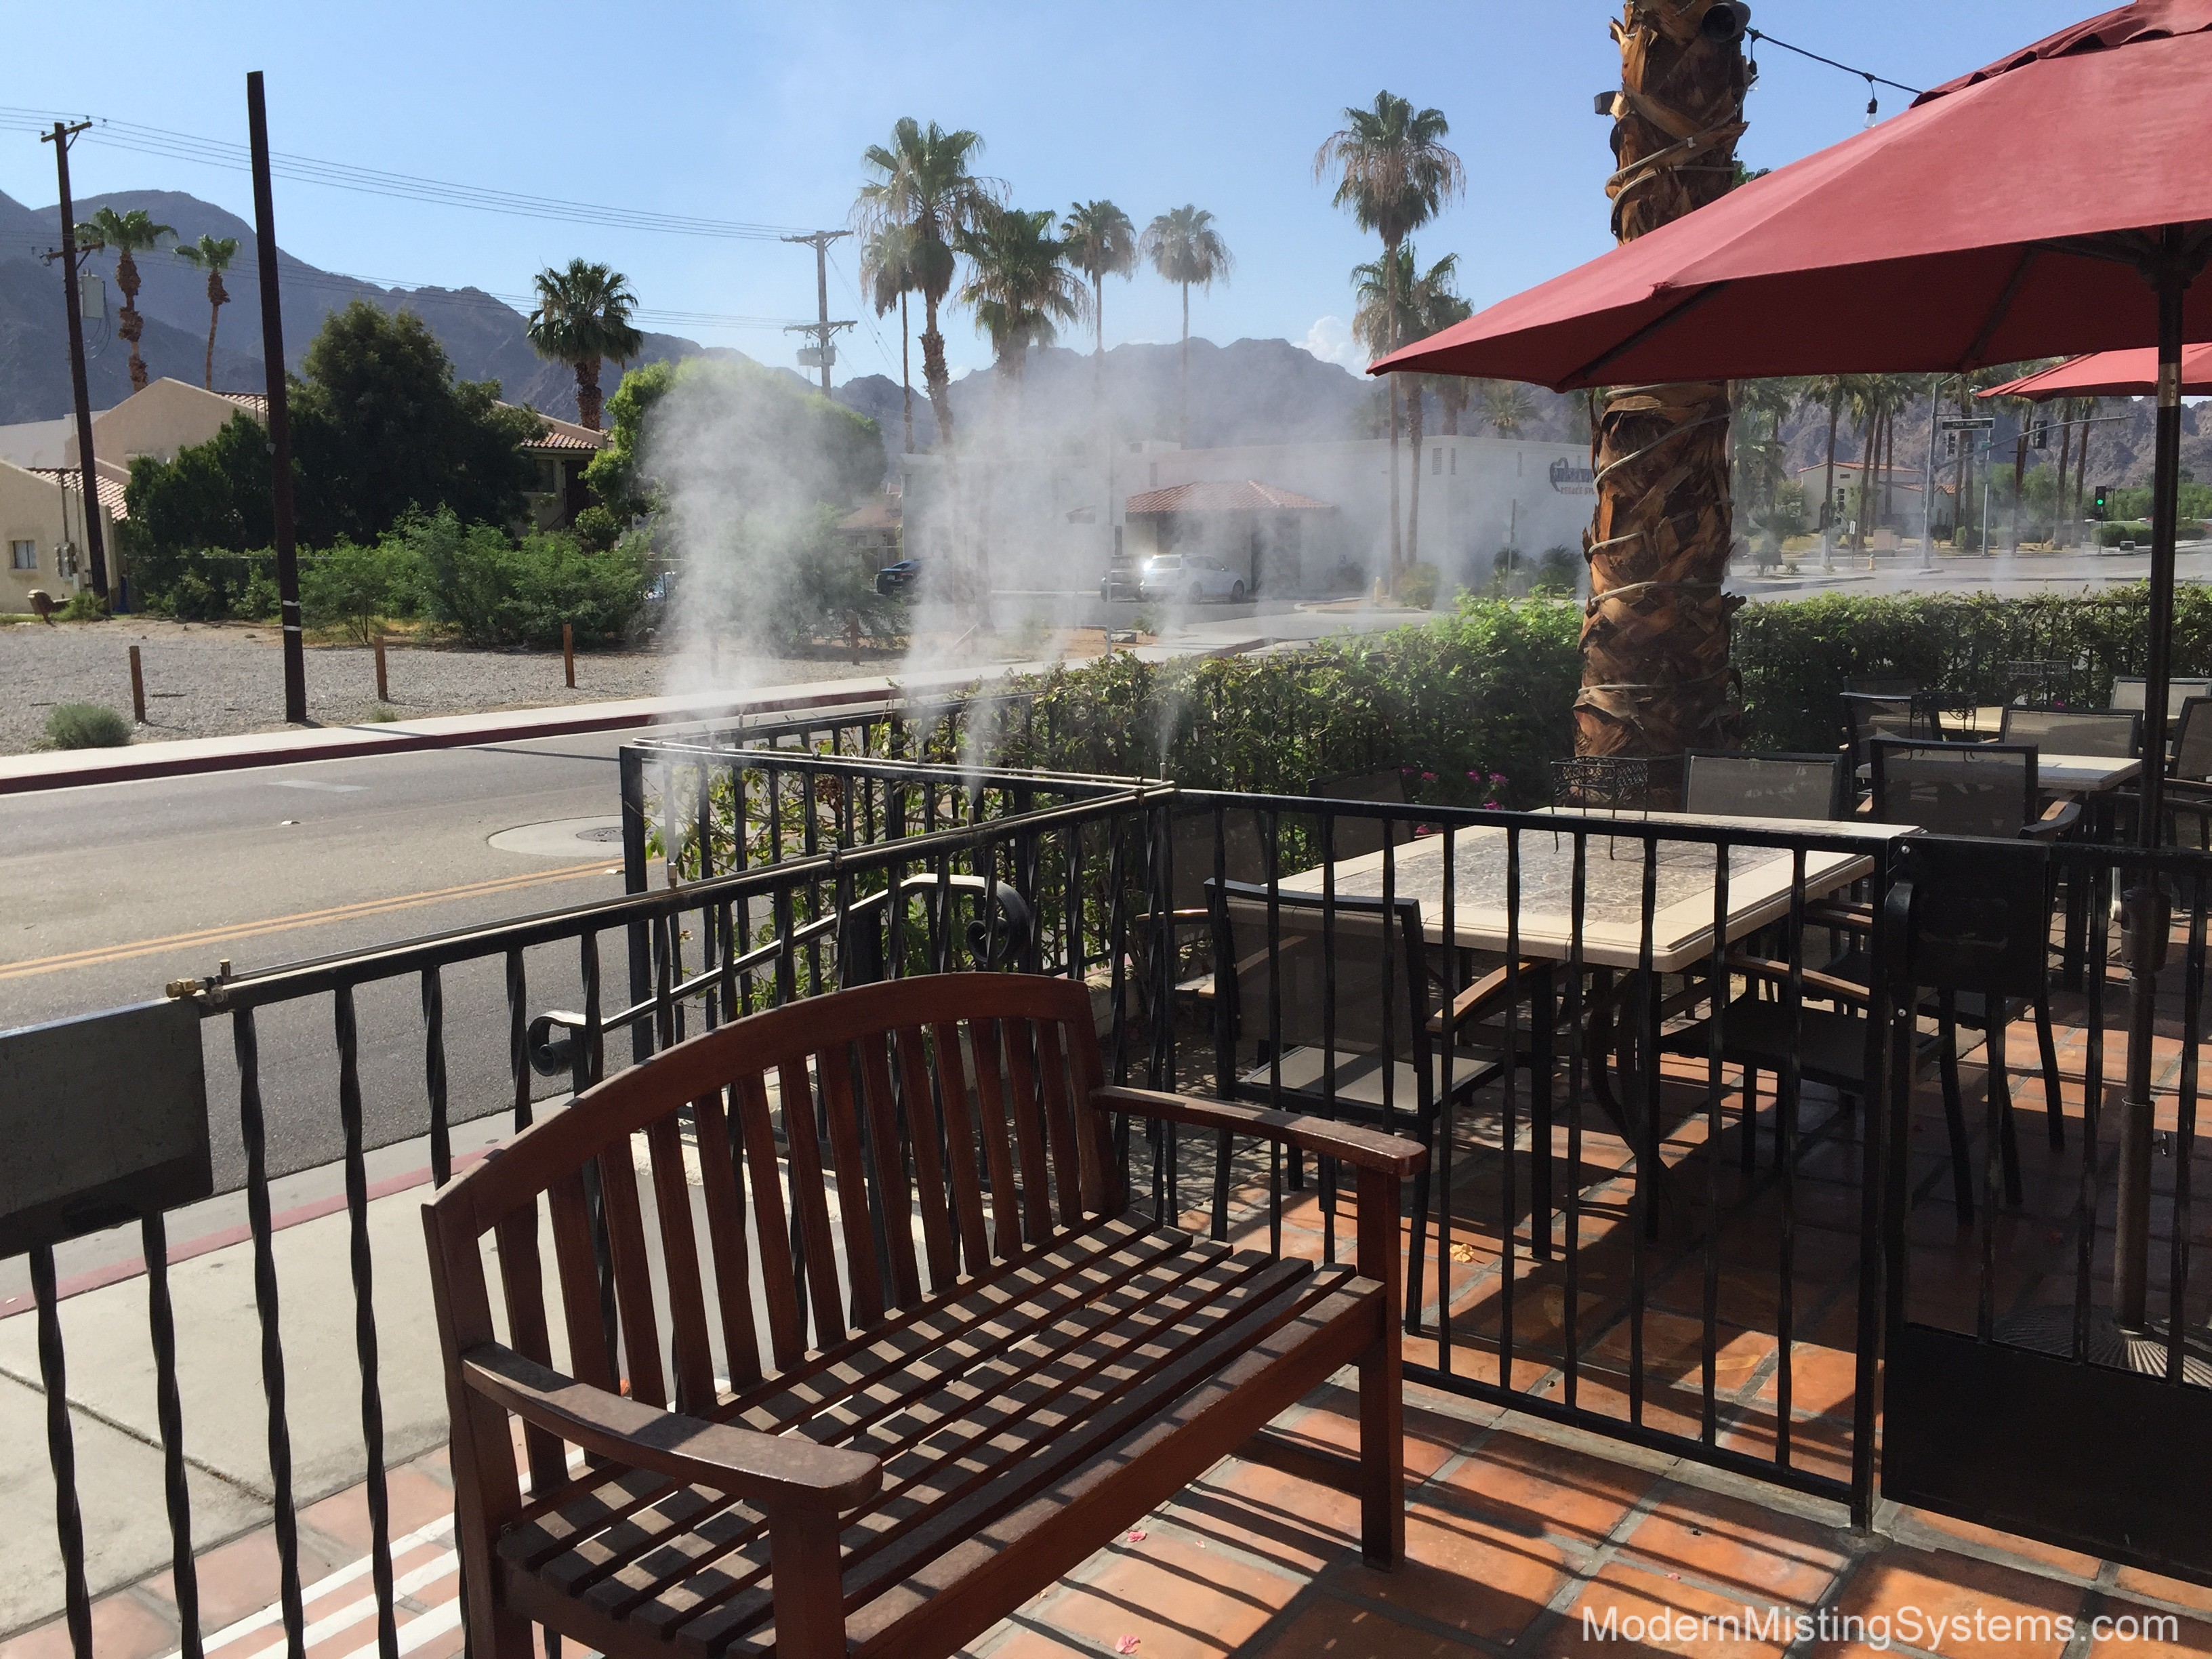 Misting System in La Quinta & the surrounding area